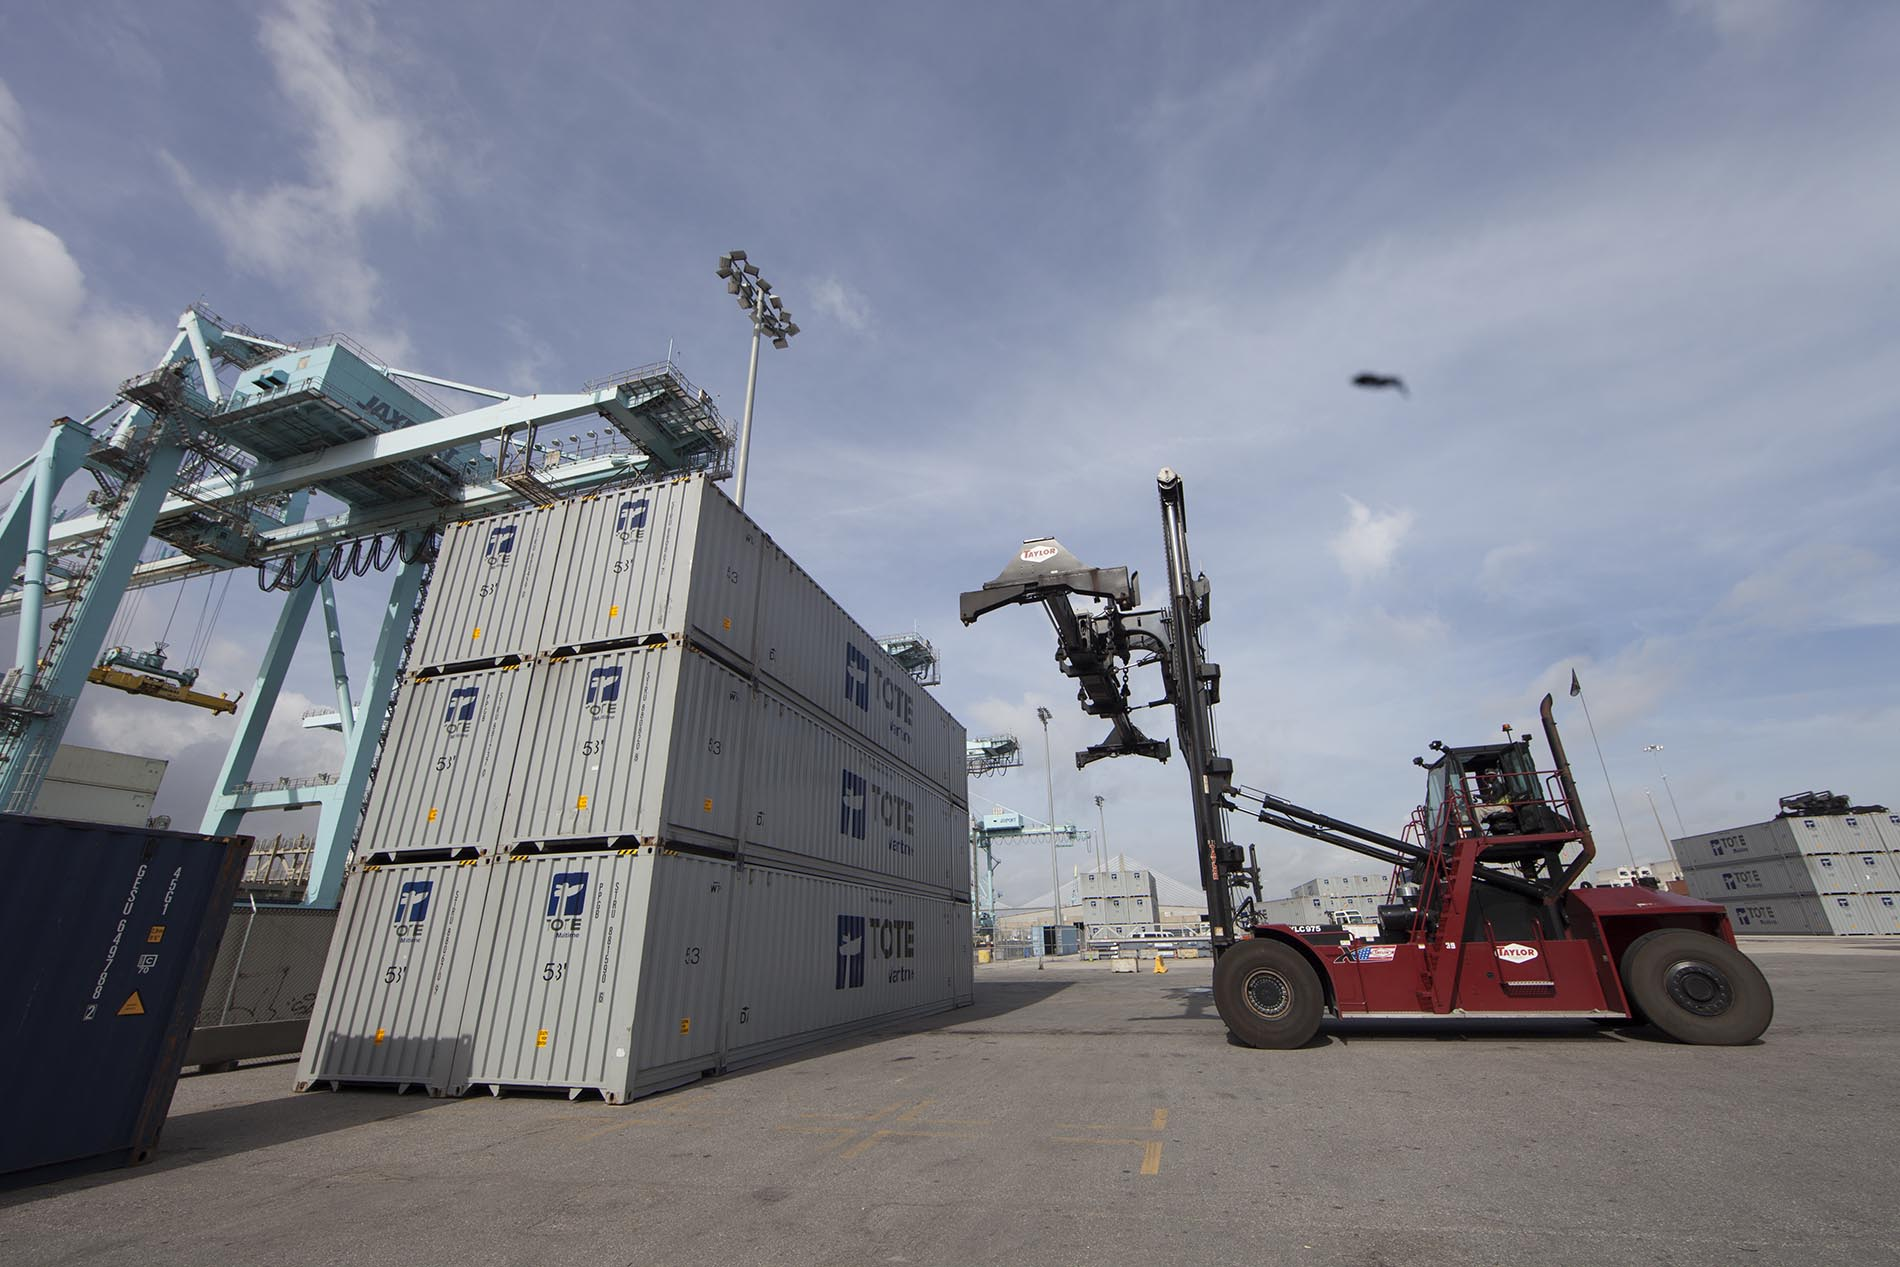 Spreader lift cargo containers